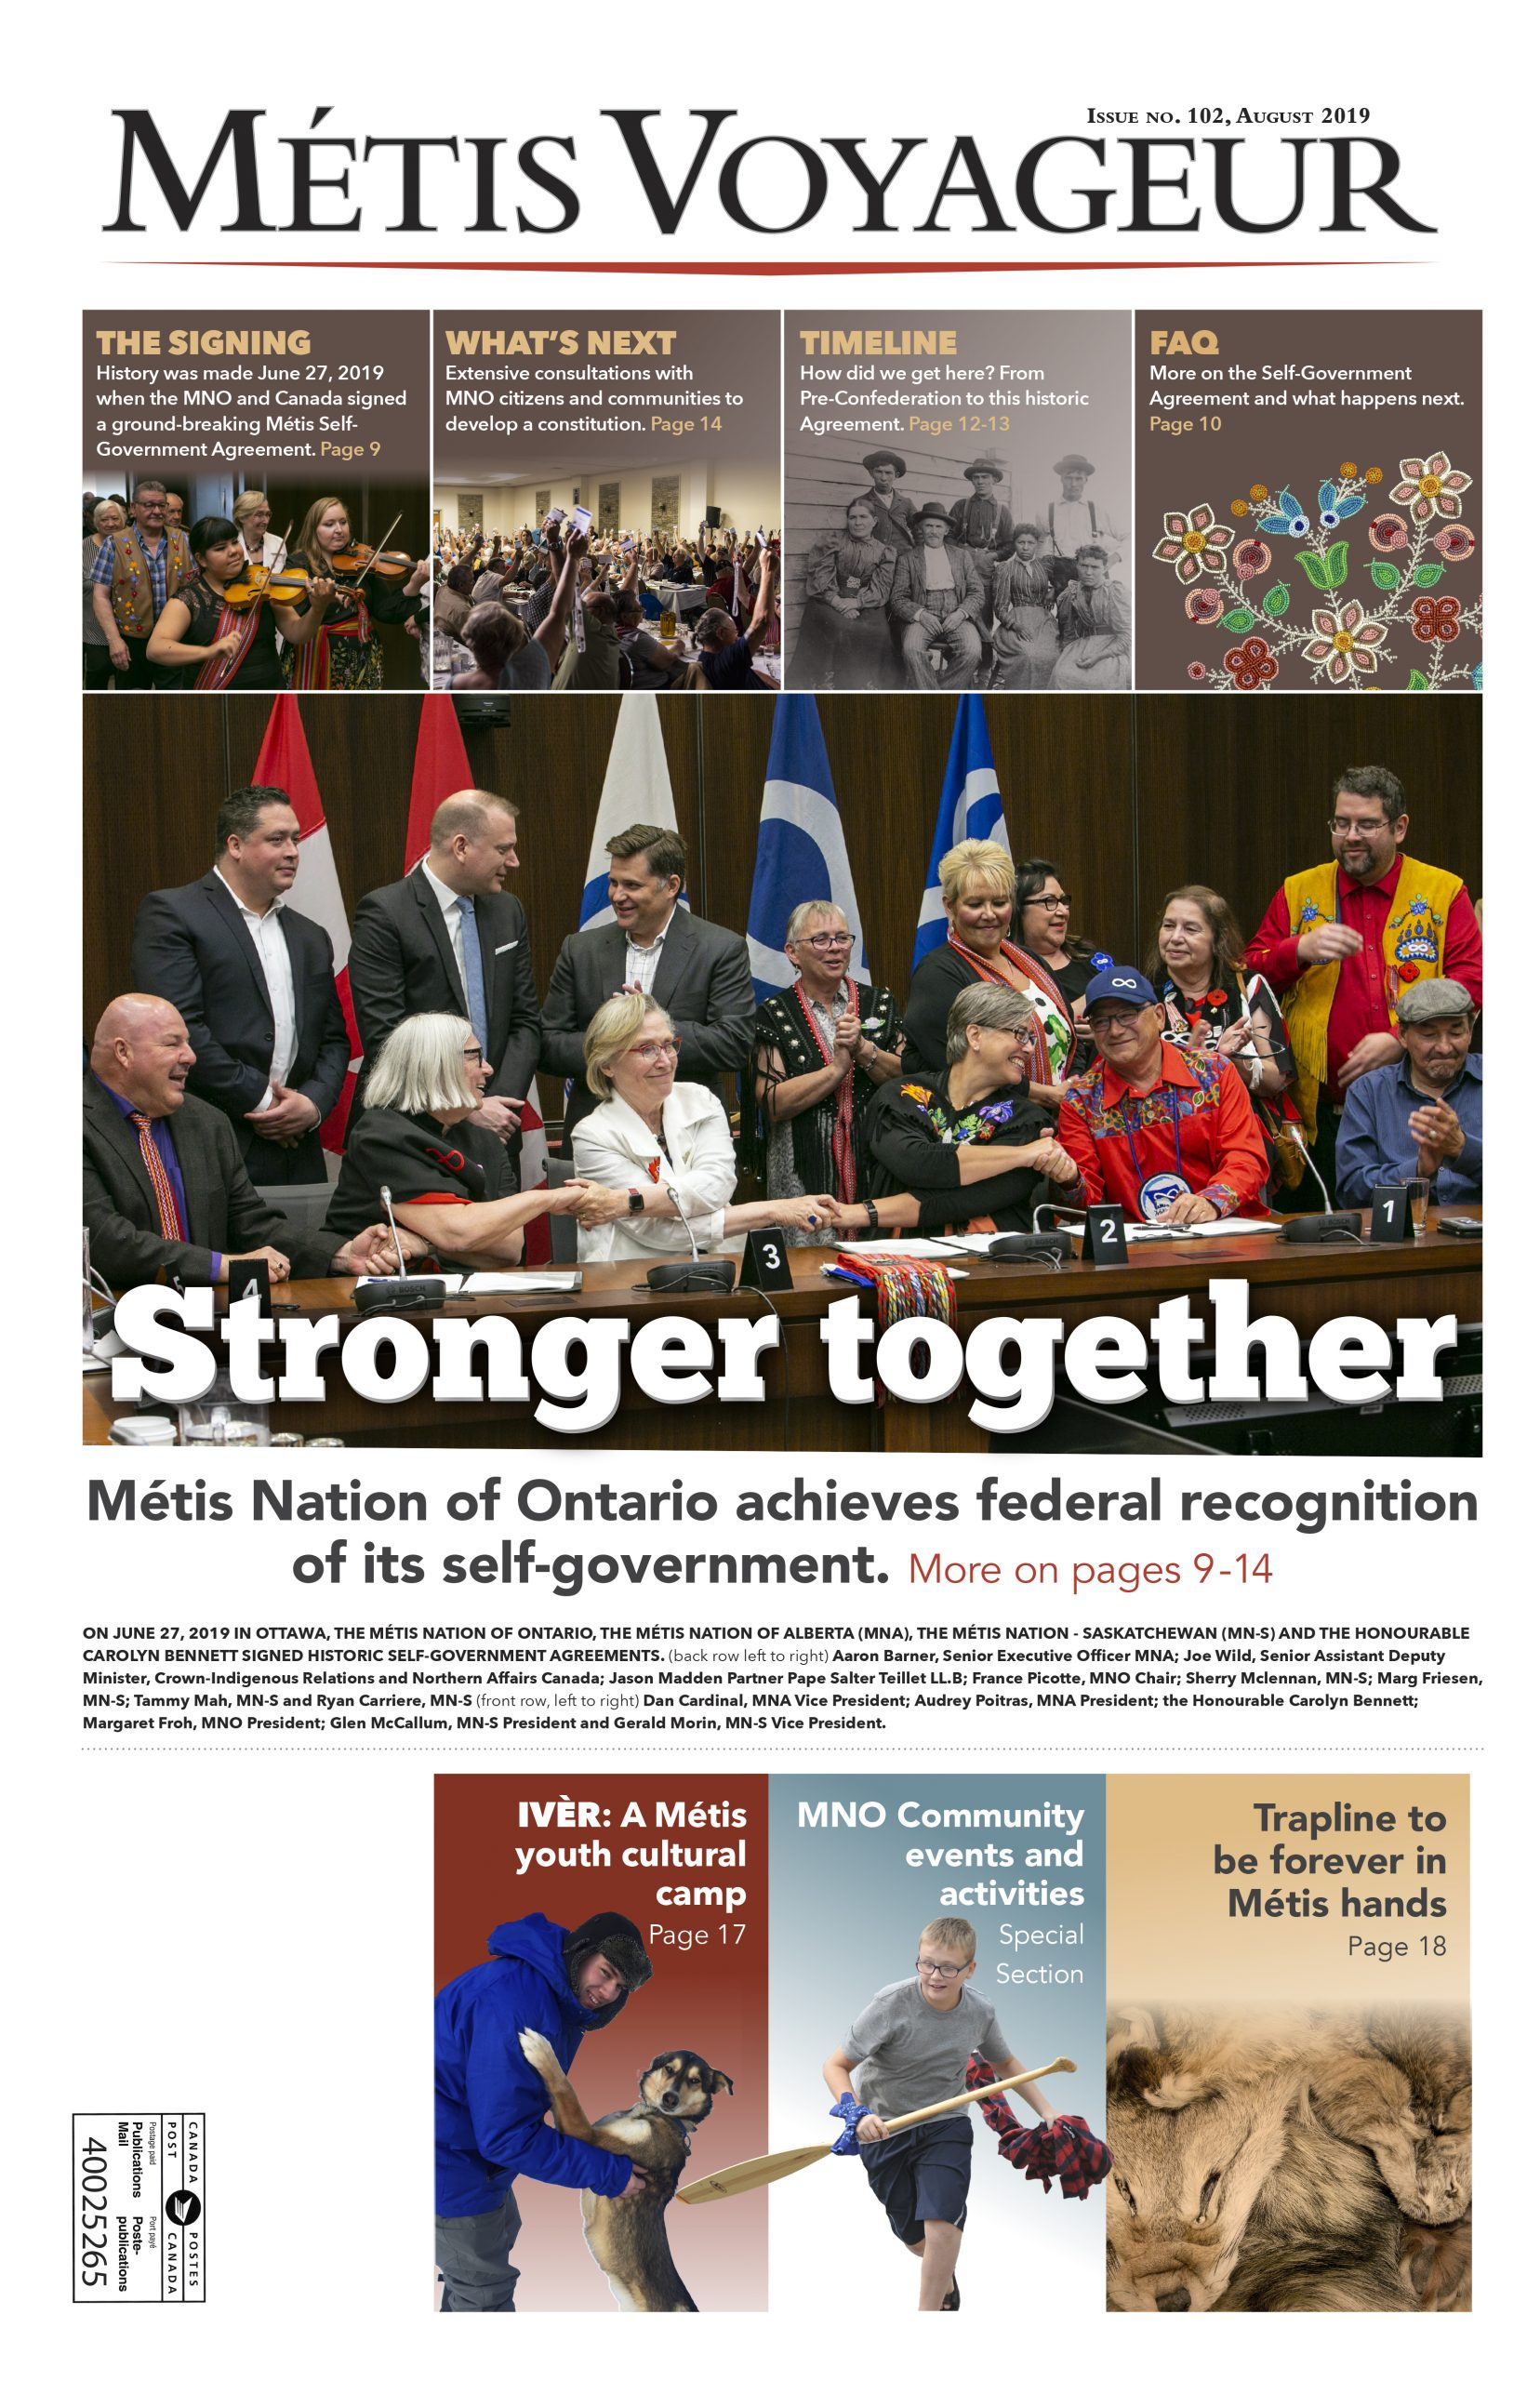 Metis Voyager Issue no. 102